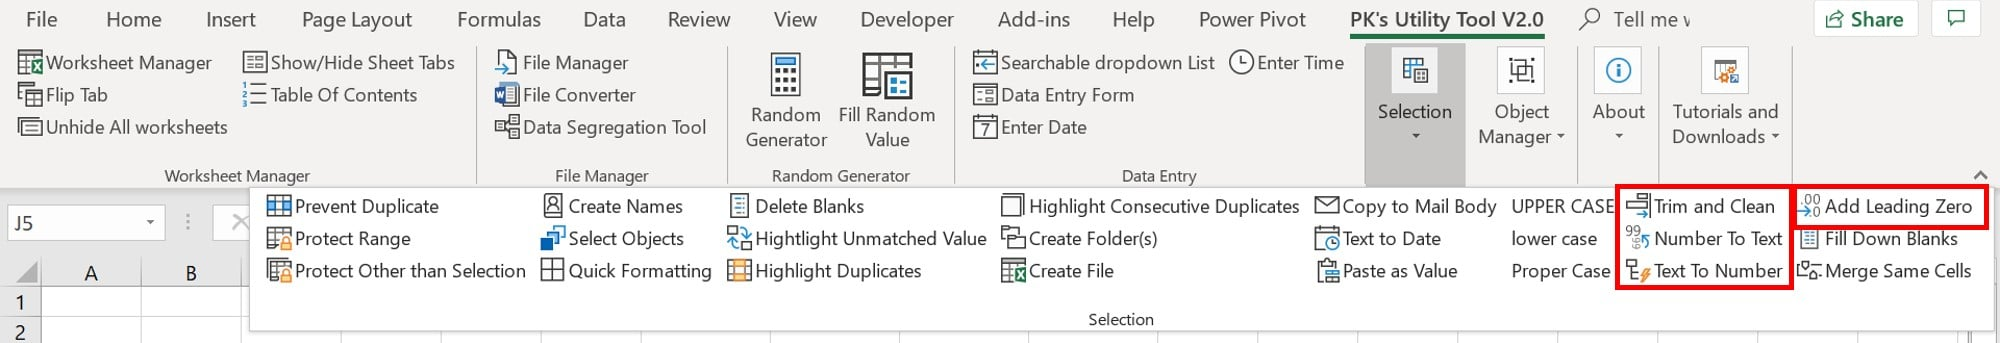 New Features in PK's Utility Tool